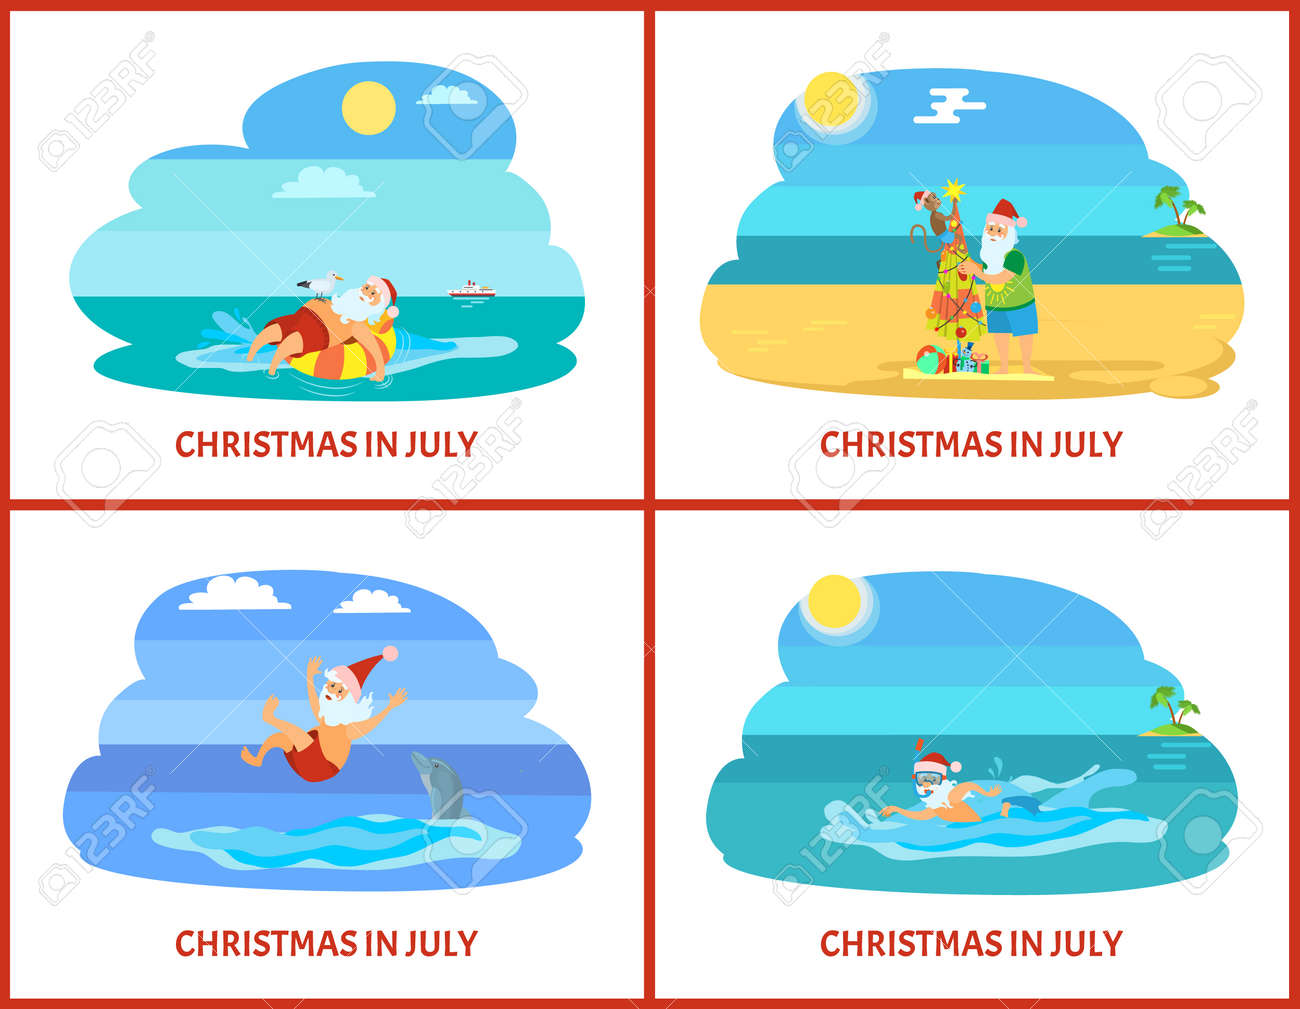 Christmas In July Santa Clipart.Christmas In July Holiday Postcard Santa Relaxing On Rubber